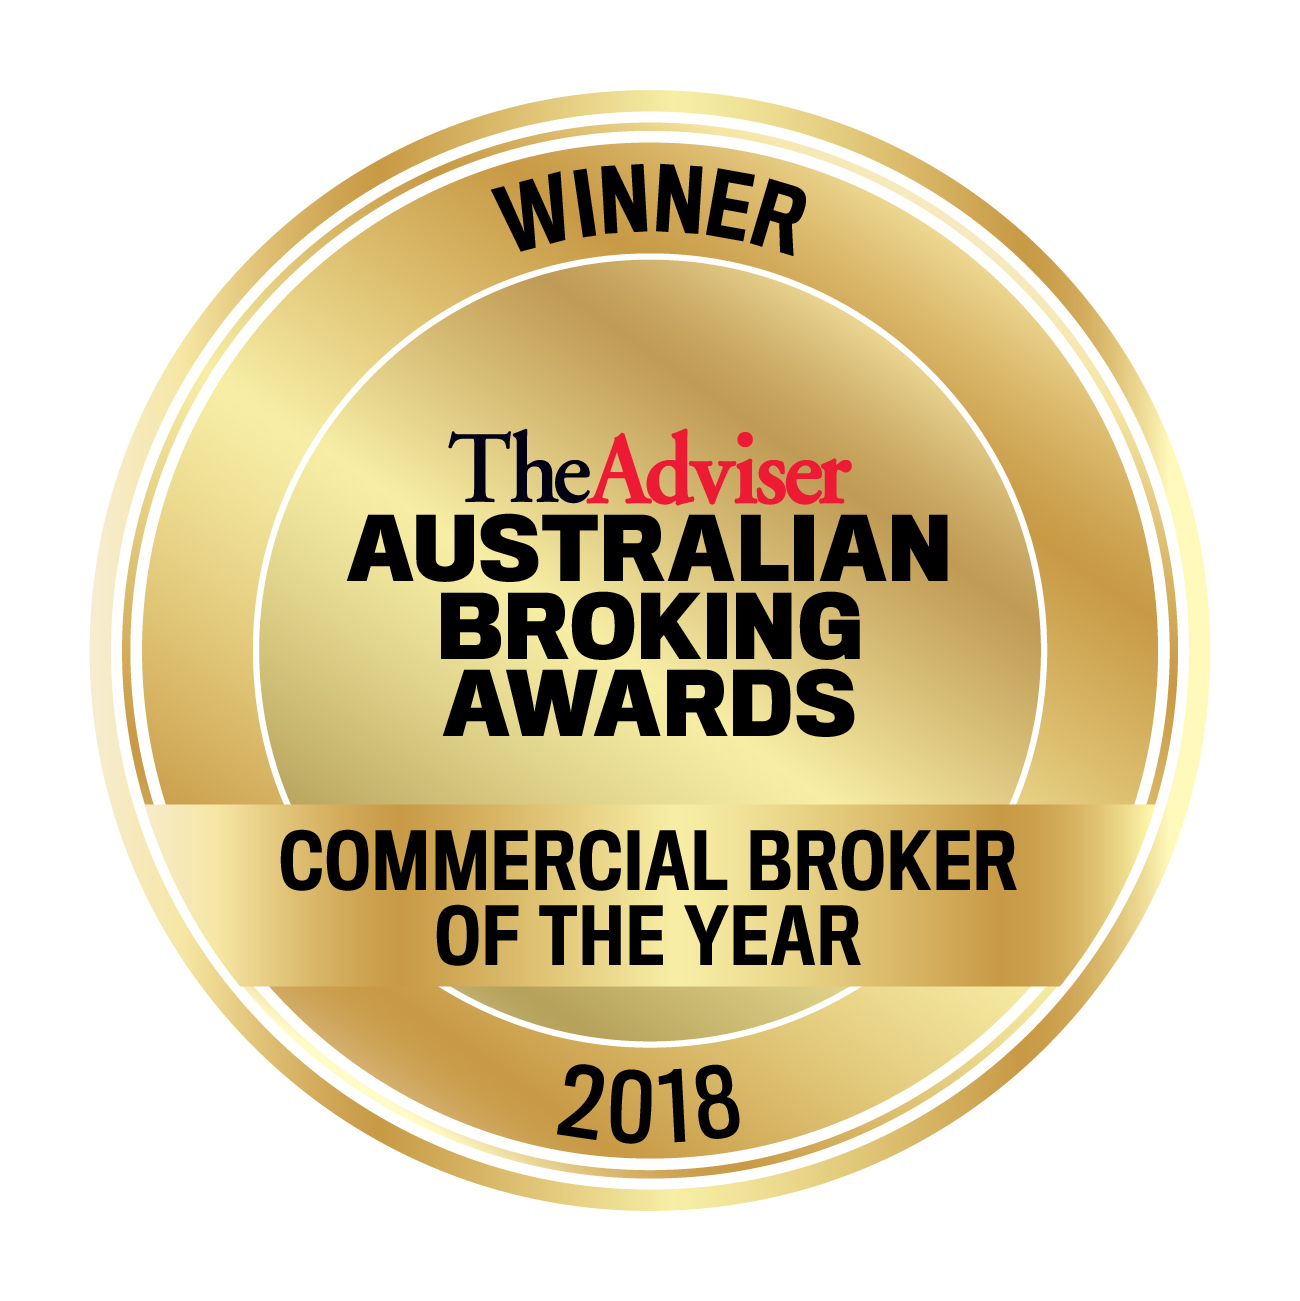 Winners Commercial Broker of the Year